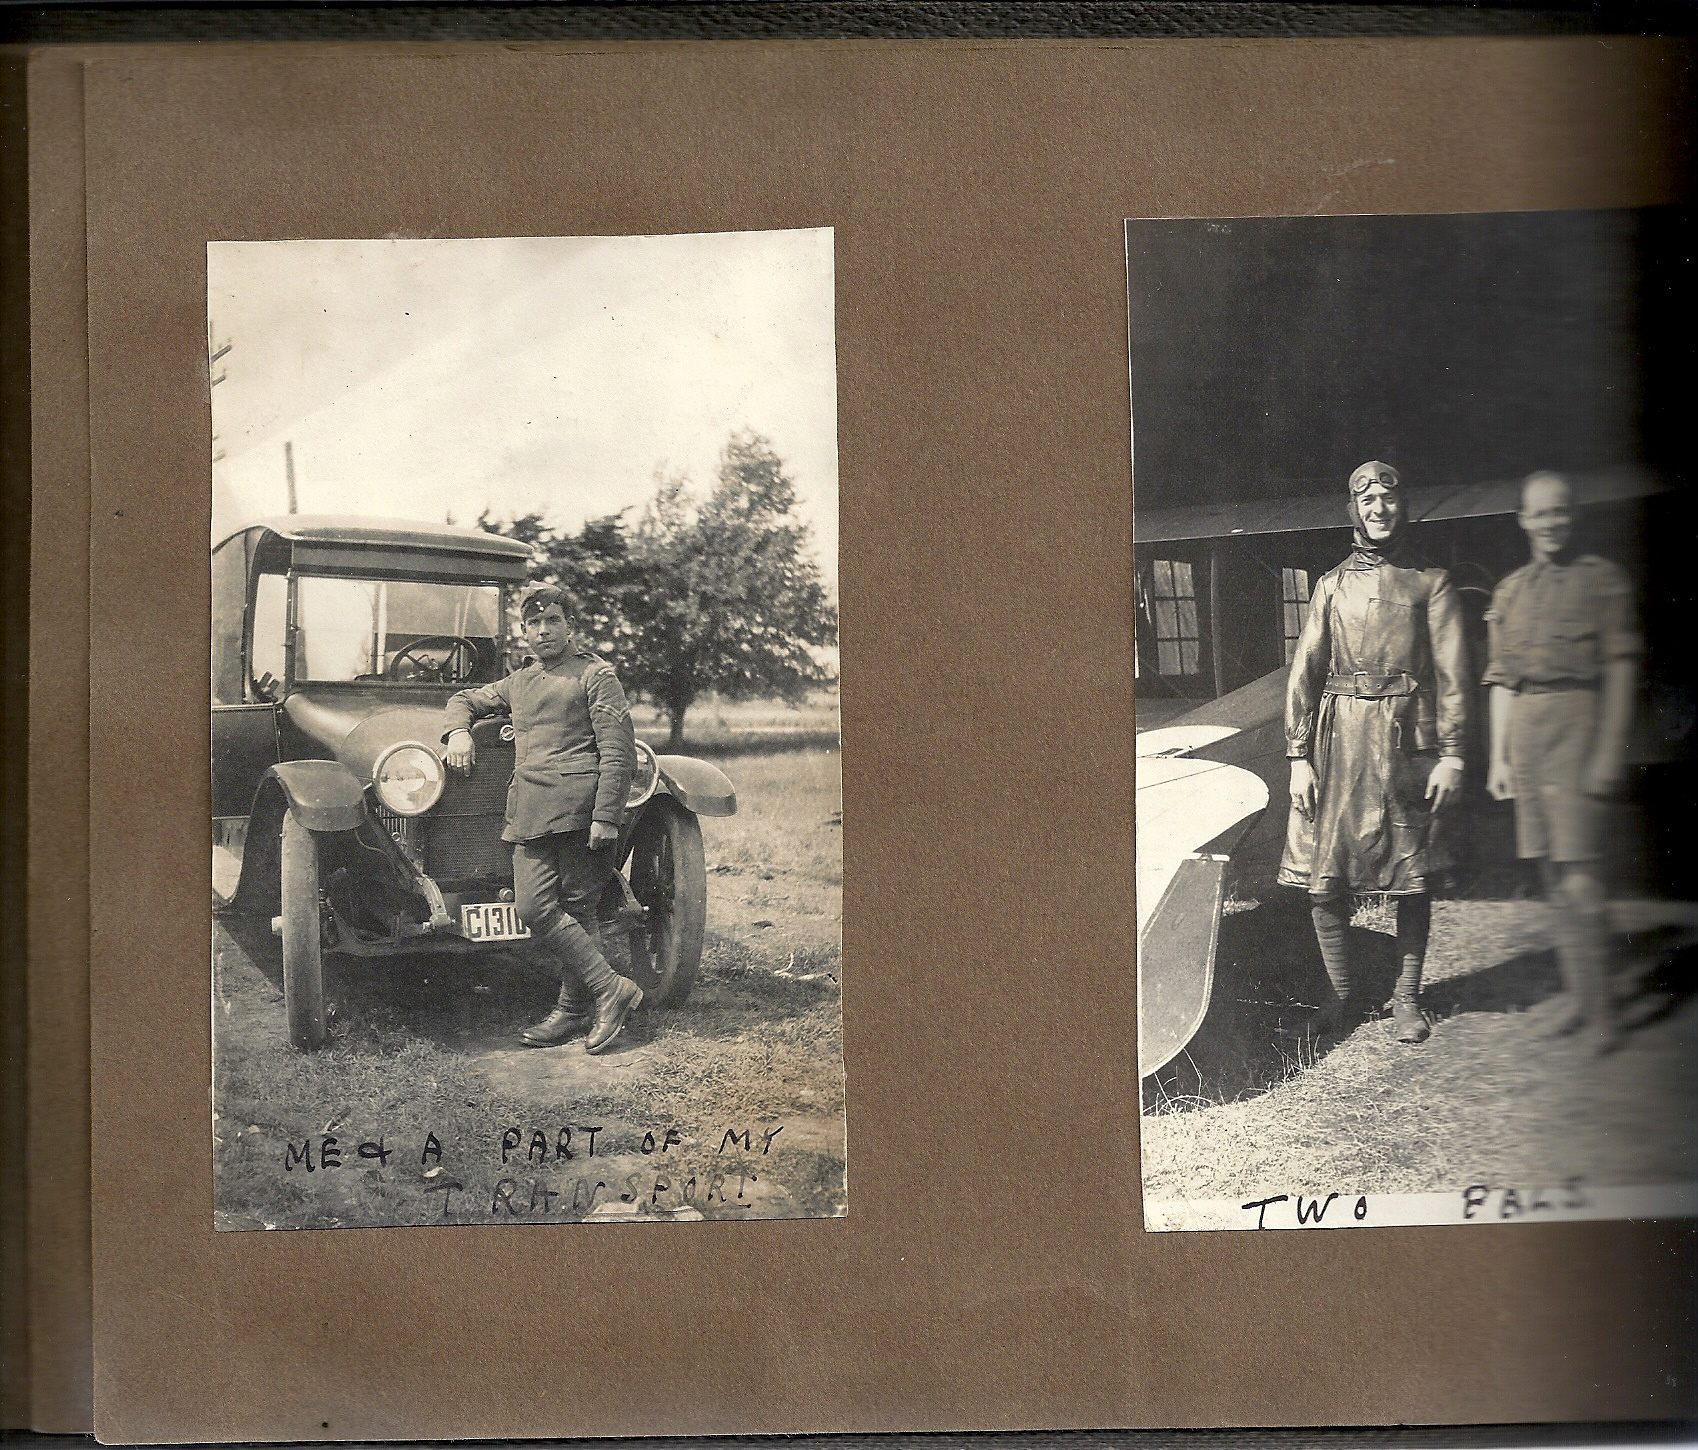 File:Snapshots of men at Camp Mohawk, one of the Royal